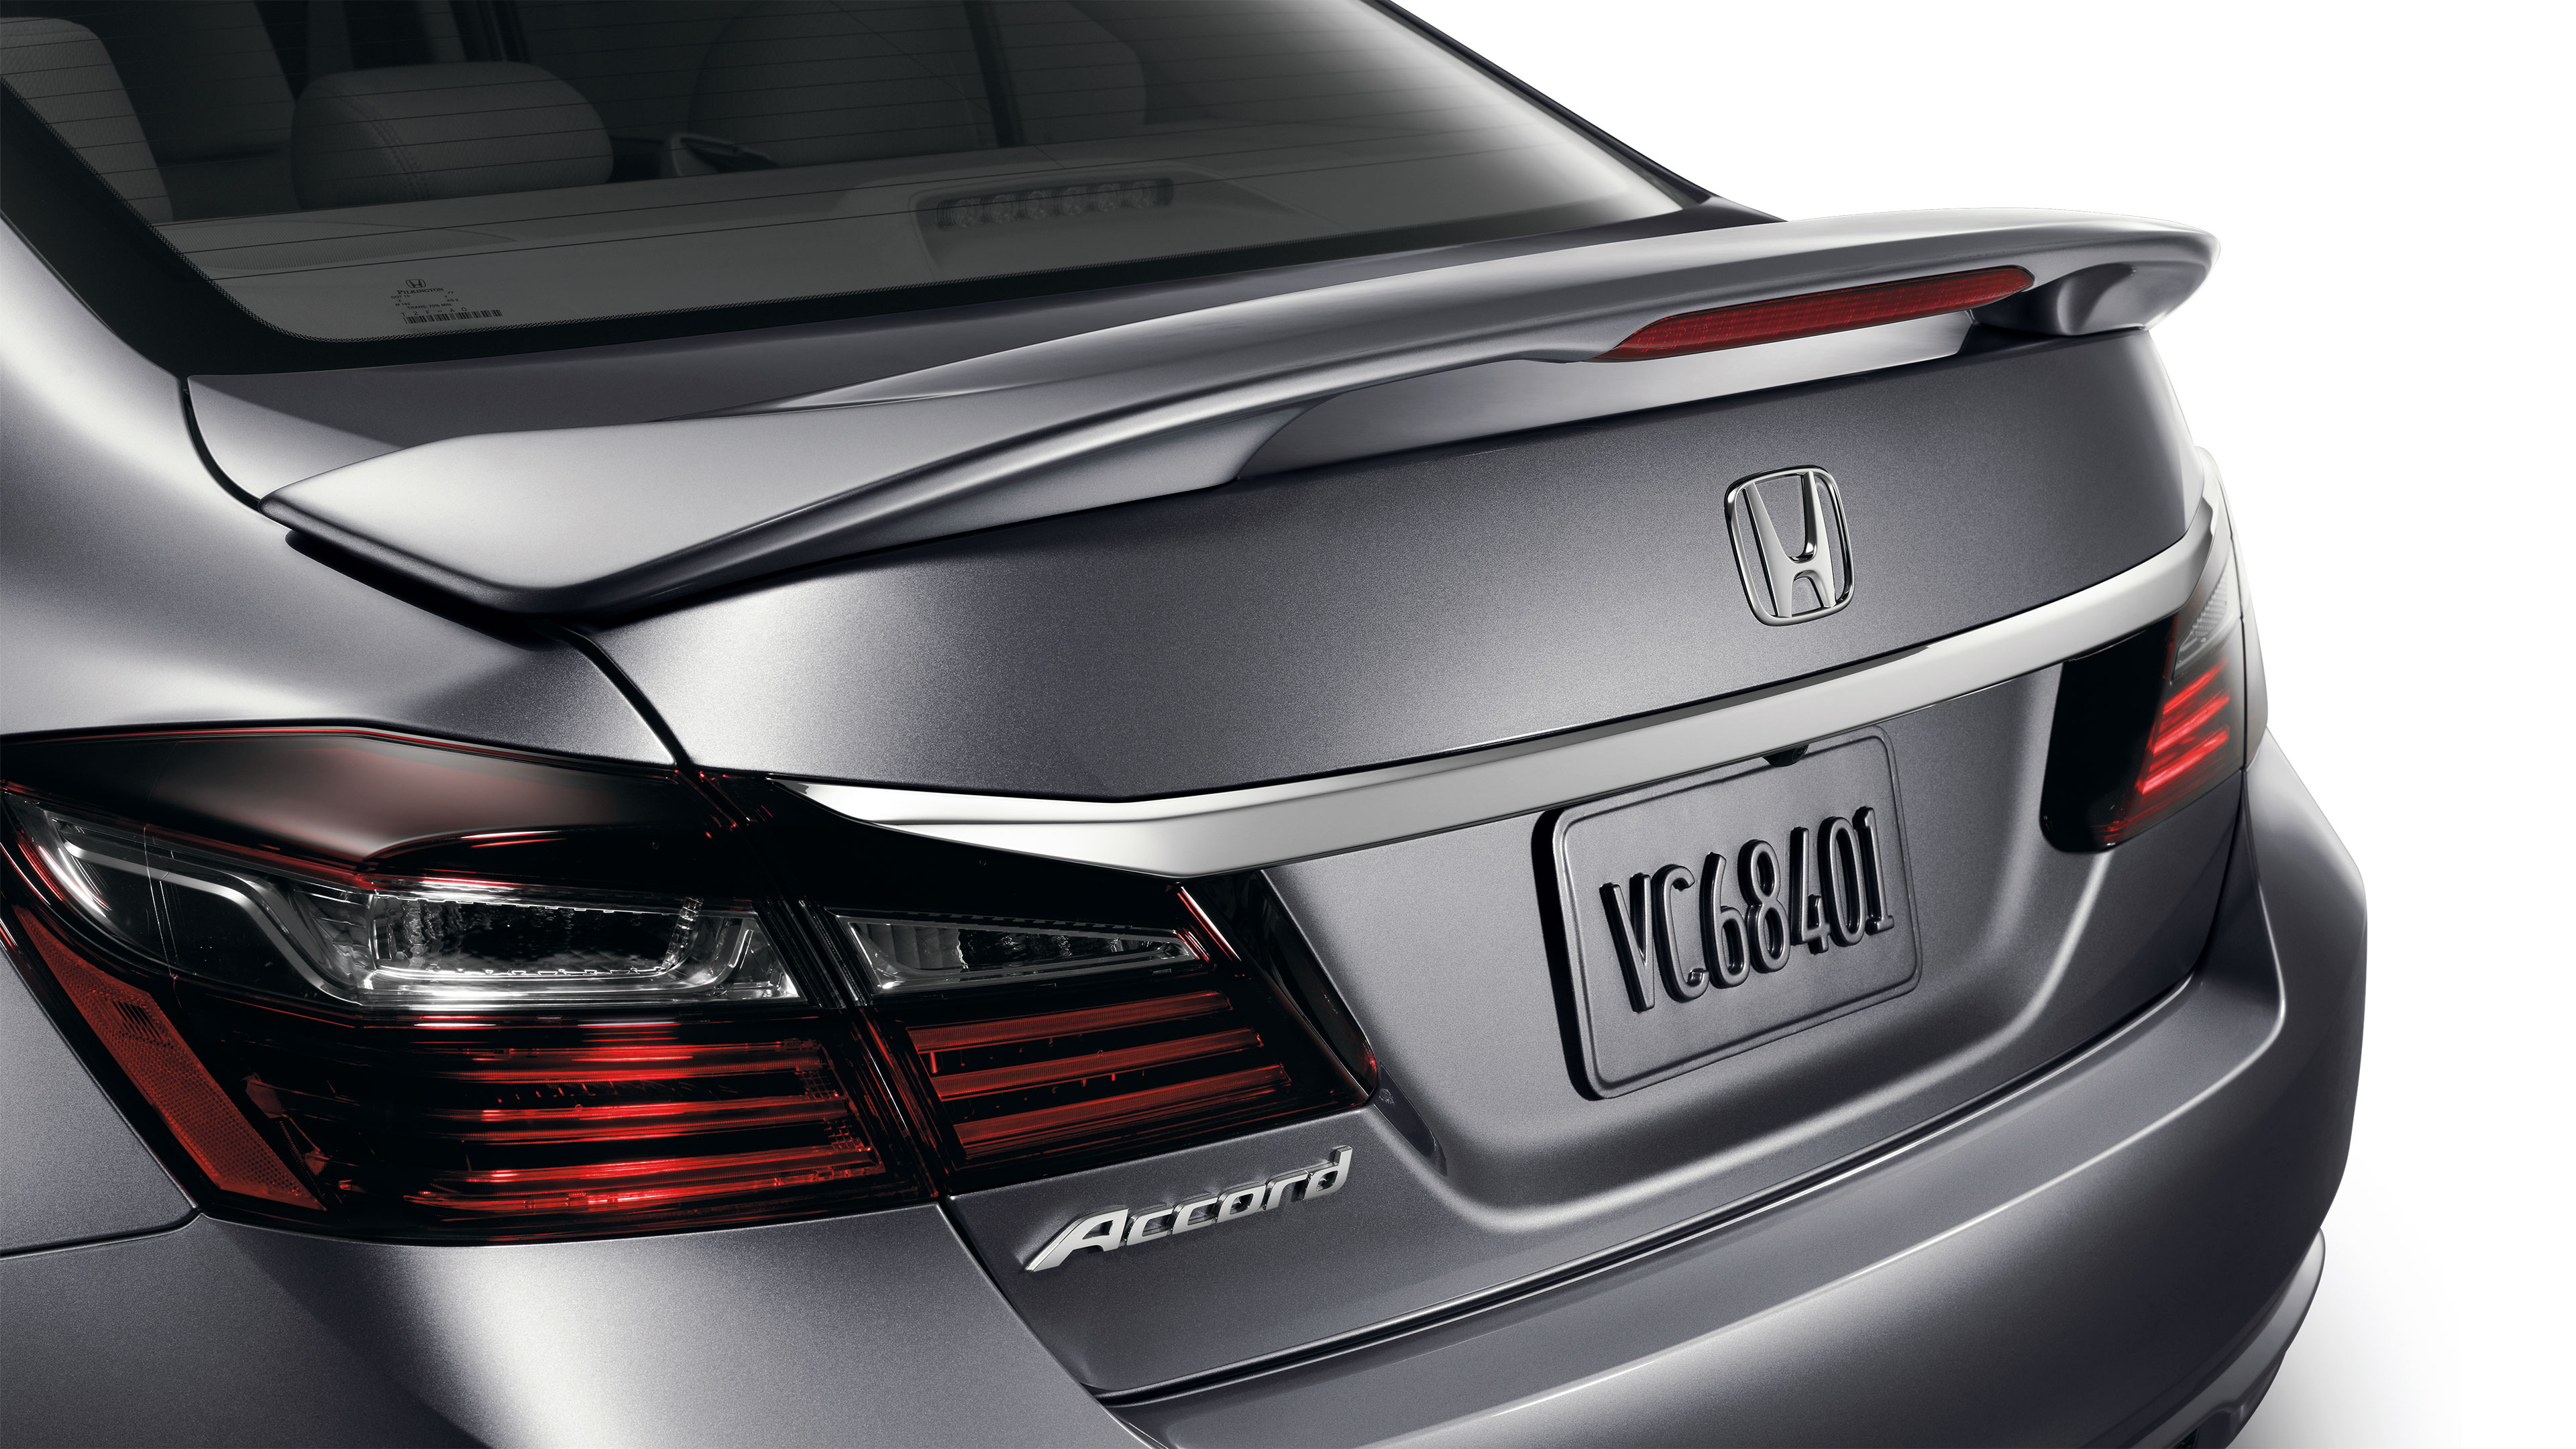 Personalize Your Honda Accord With Genuine Honda